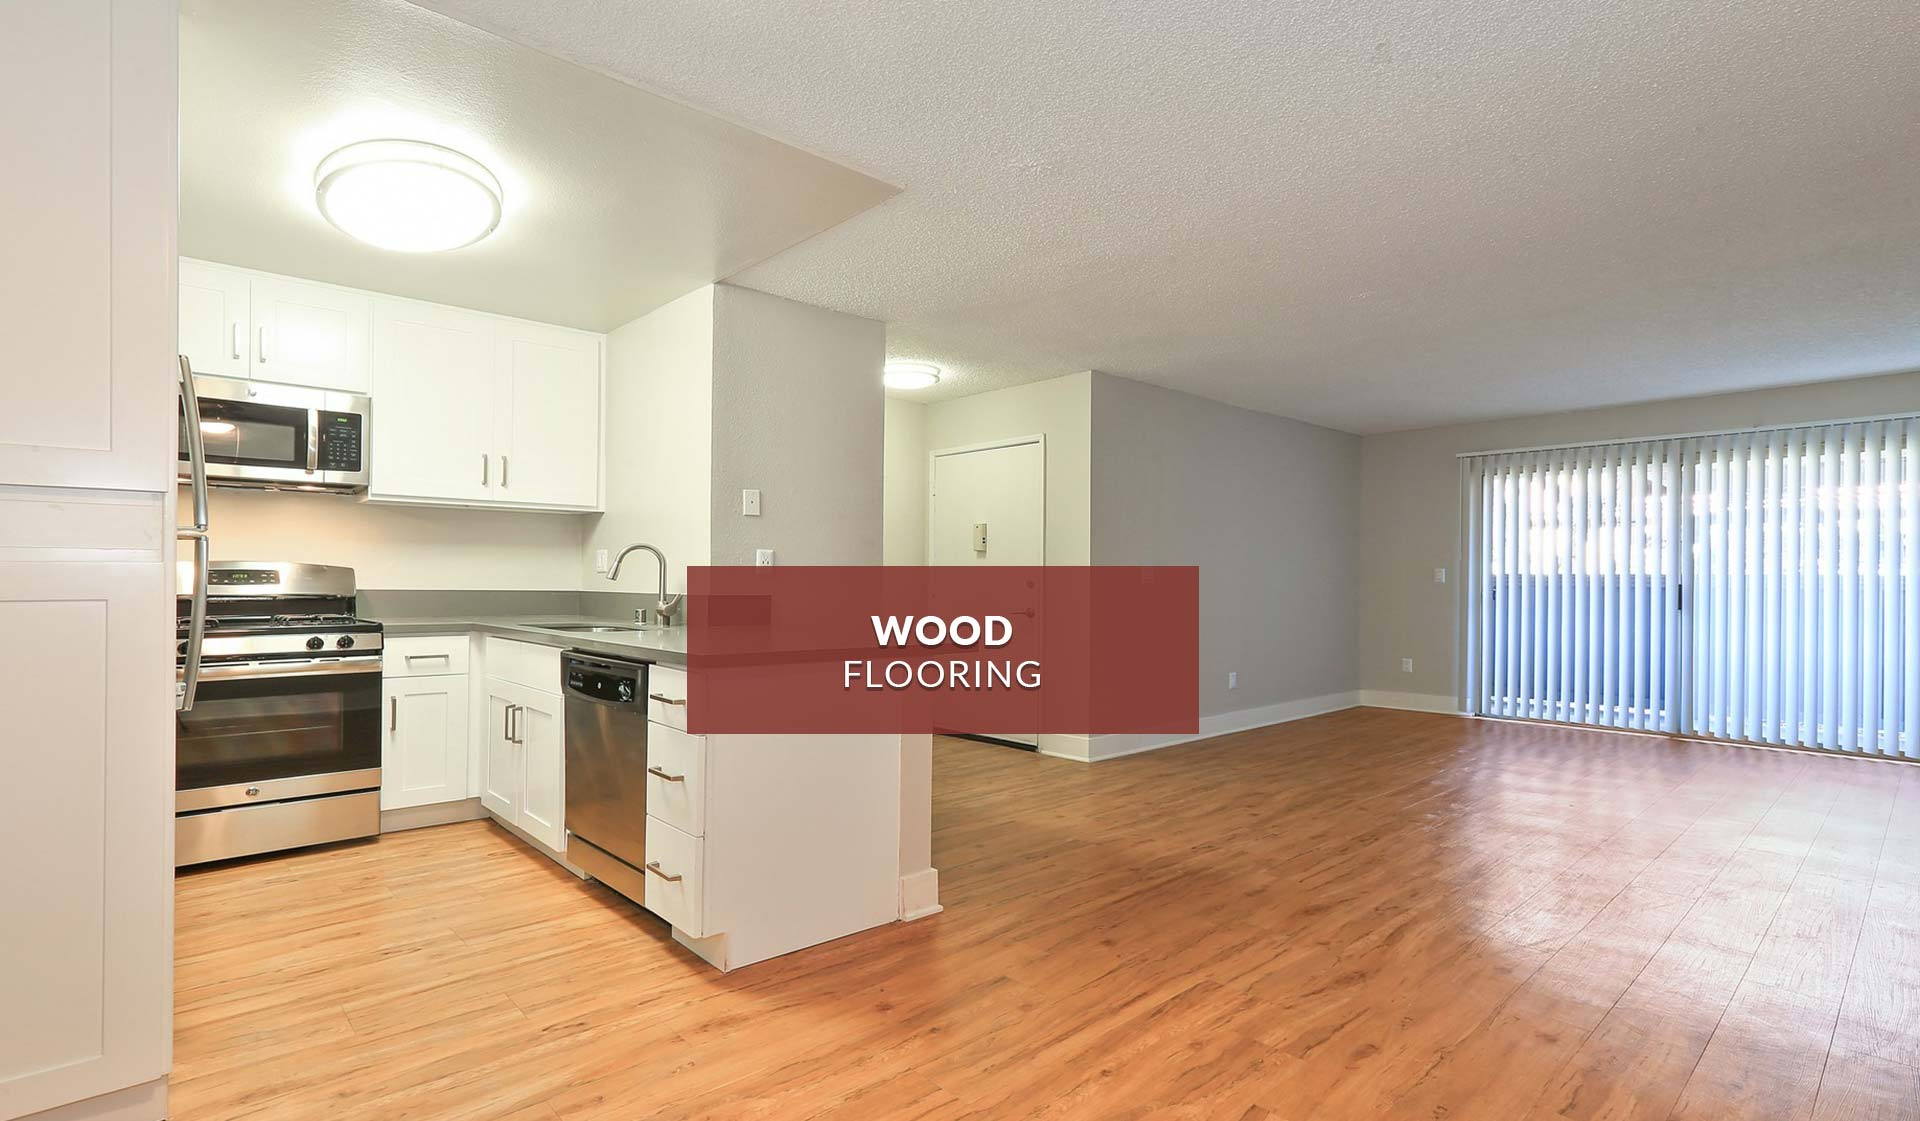 Indian Oaks Apartments - Wood Flooring - Simi Valley, CA